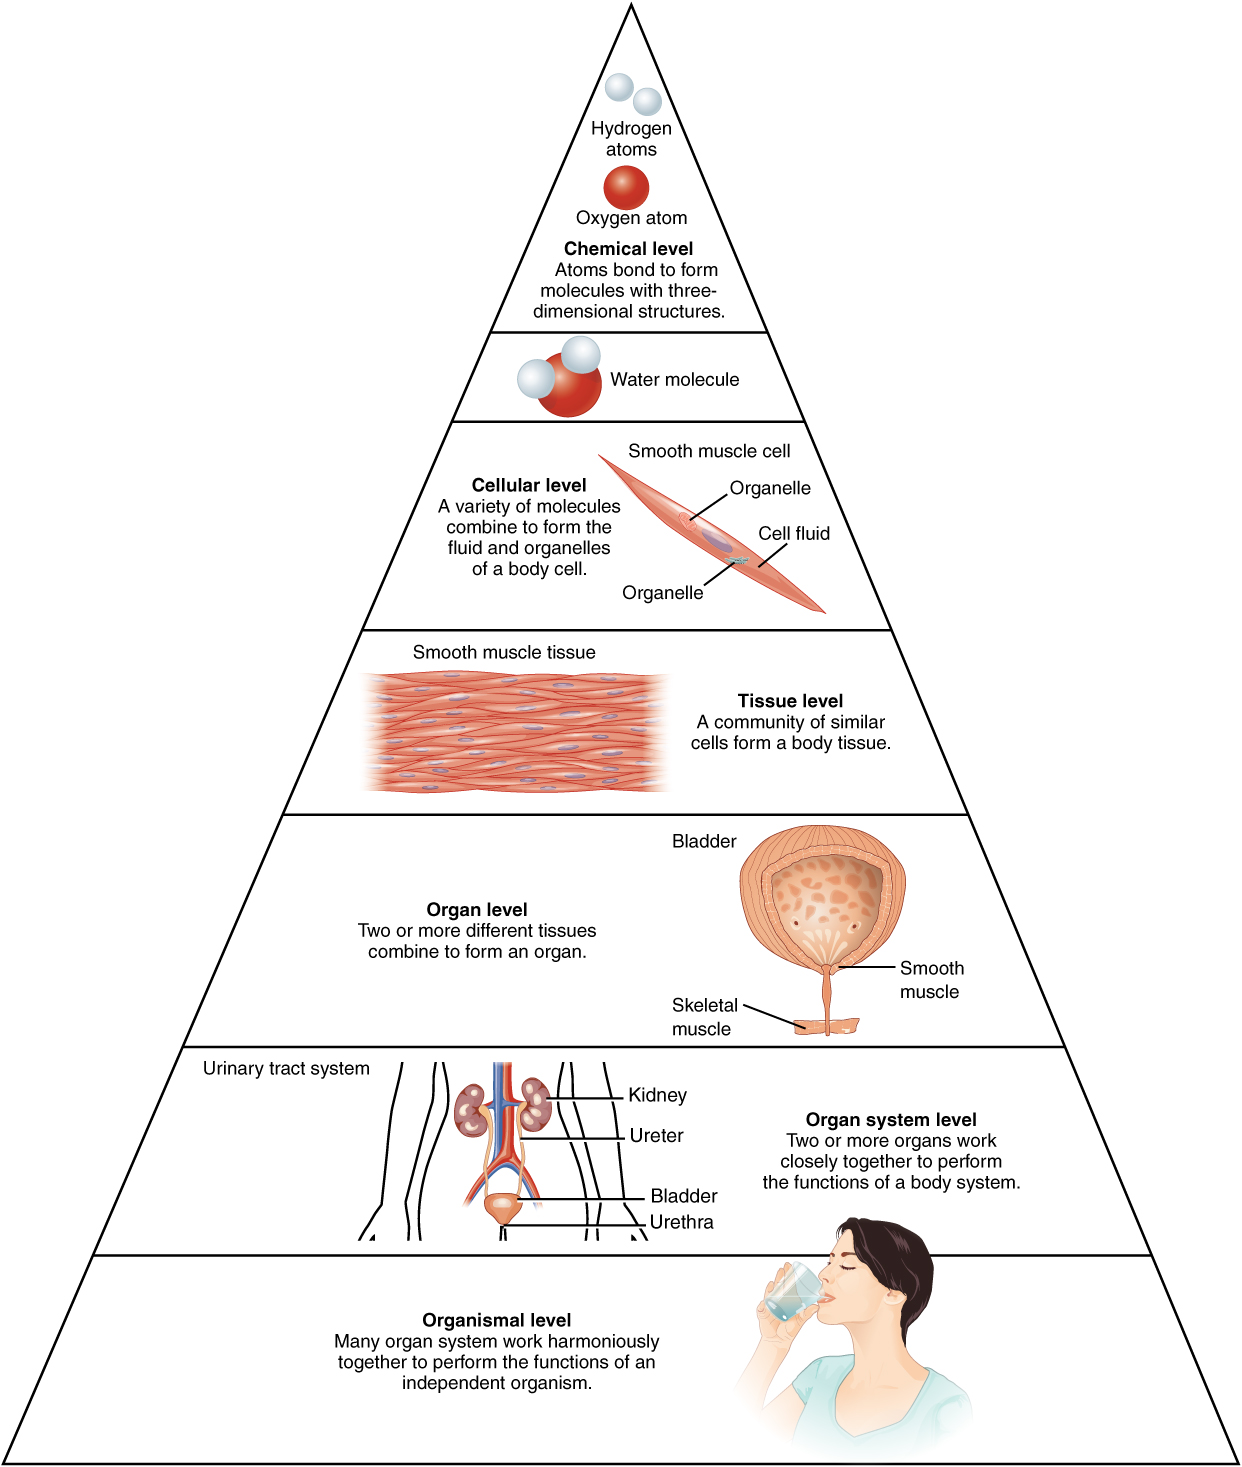 12 Structural Organization Of The Human Body Anatomy And Physiology